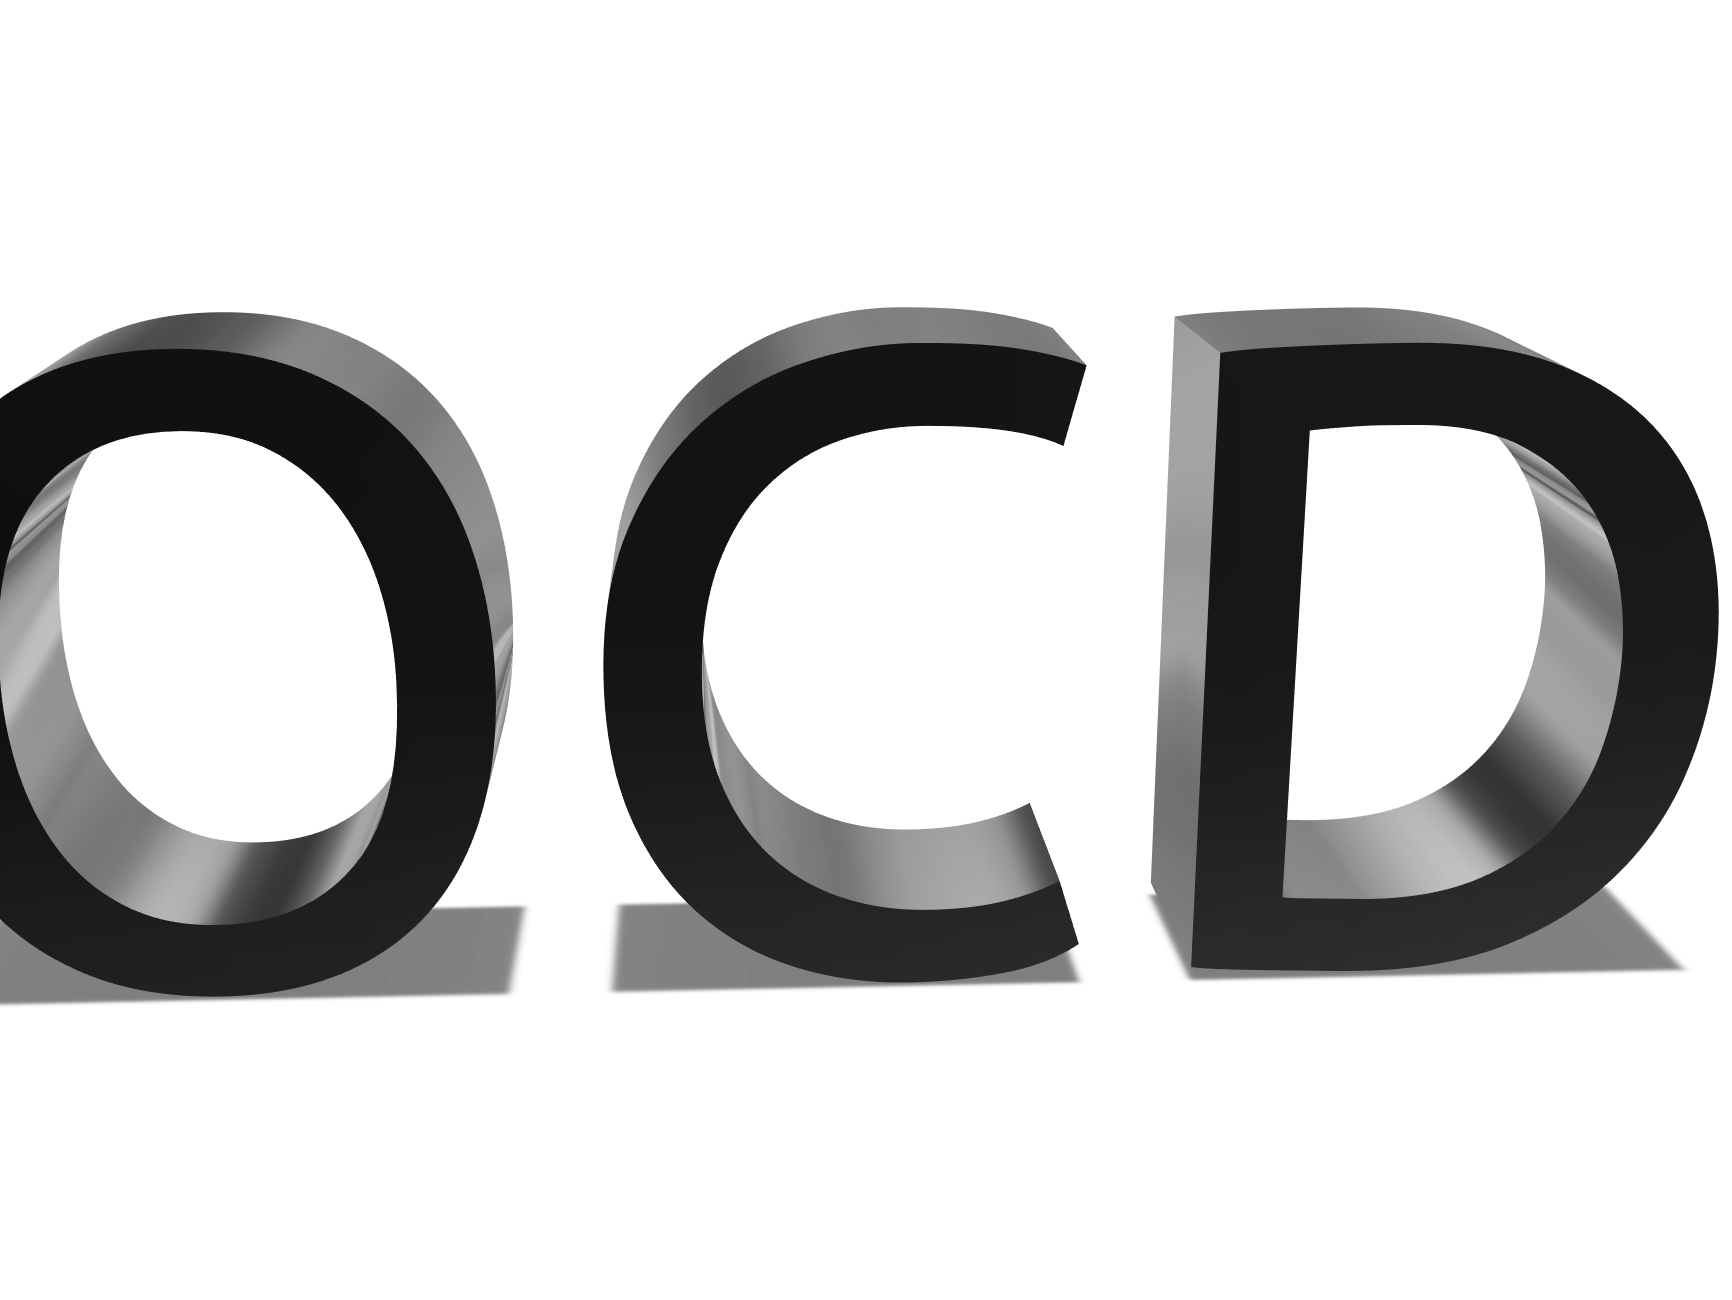 OCD - 3D design by House Trax on Mar 7, 2018